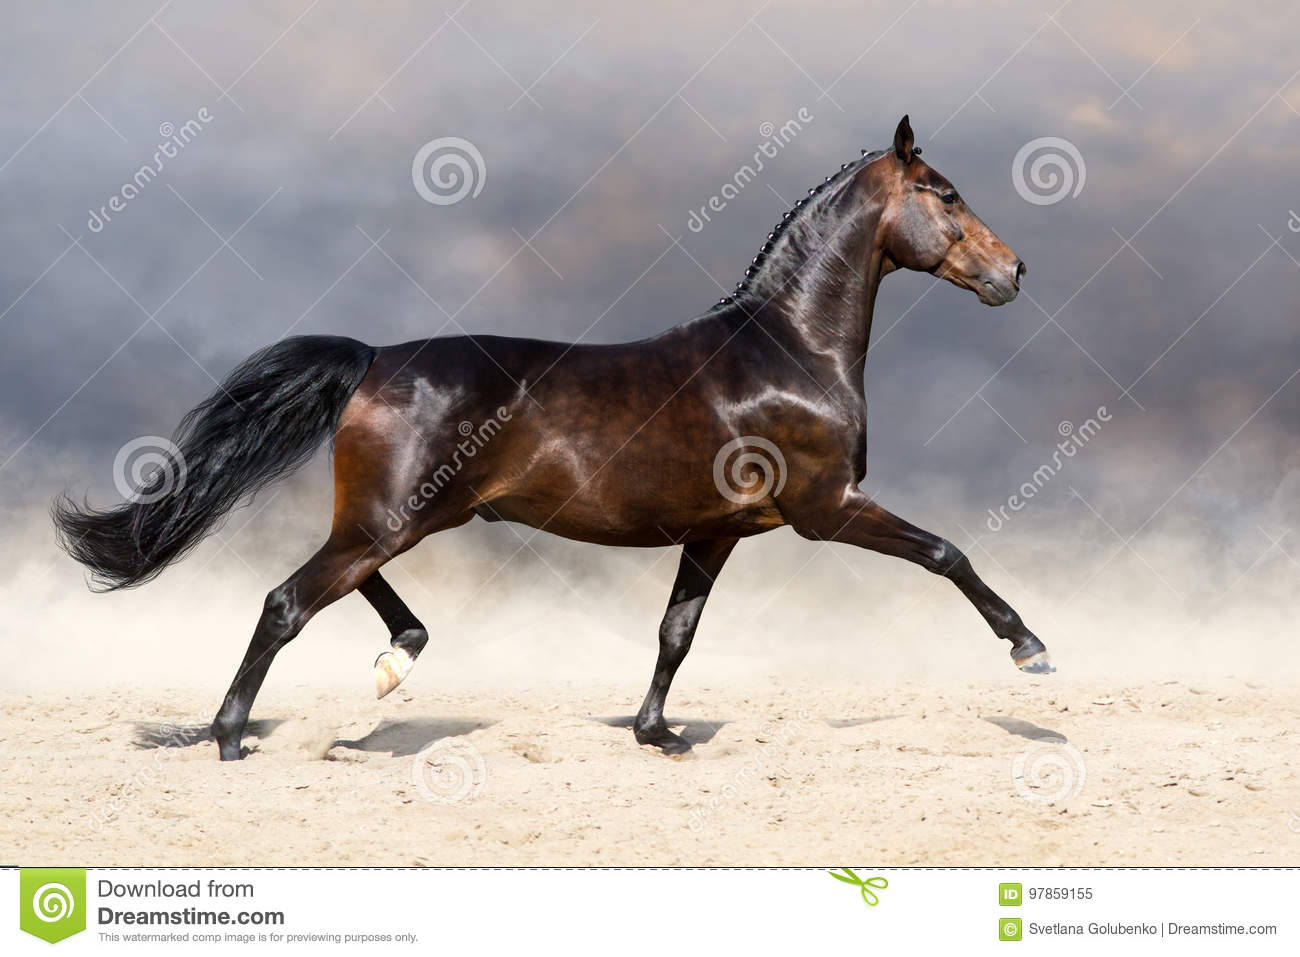 Horse trotting in desert